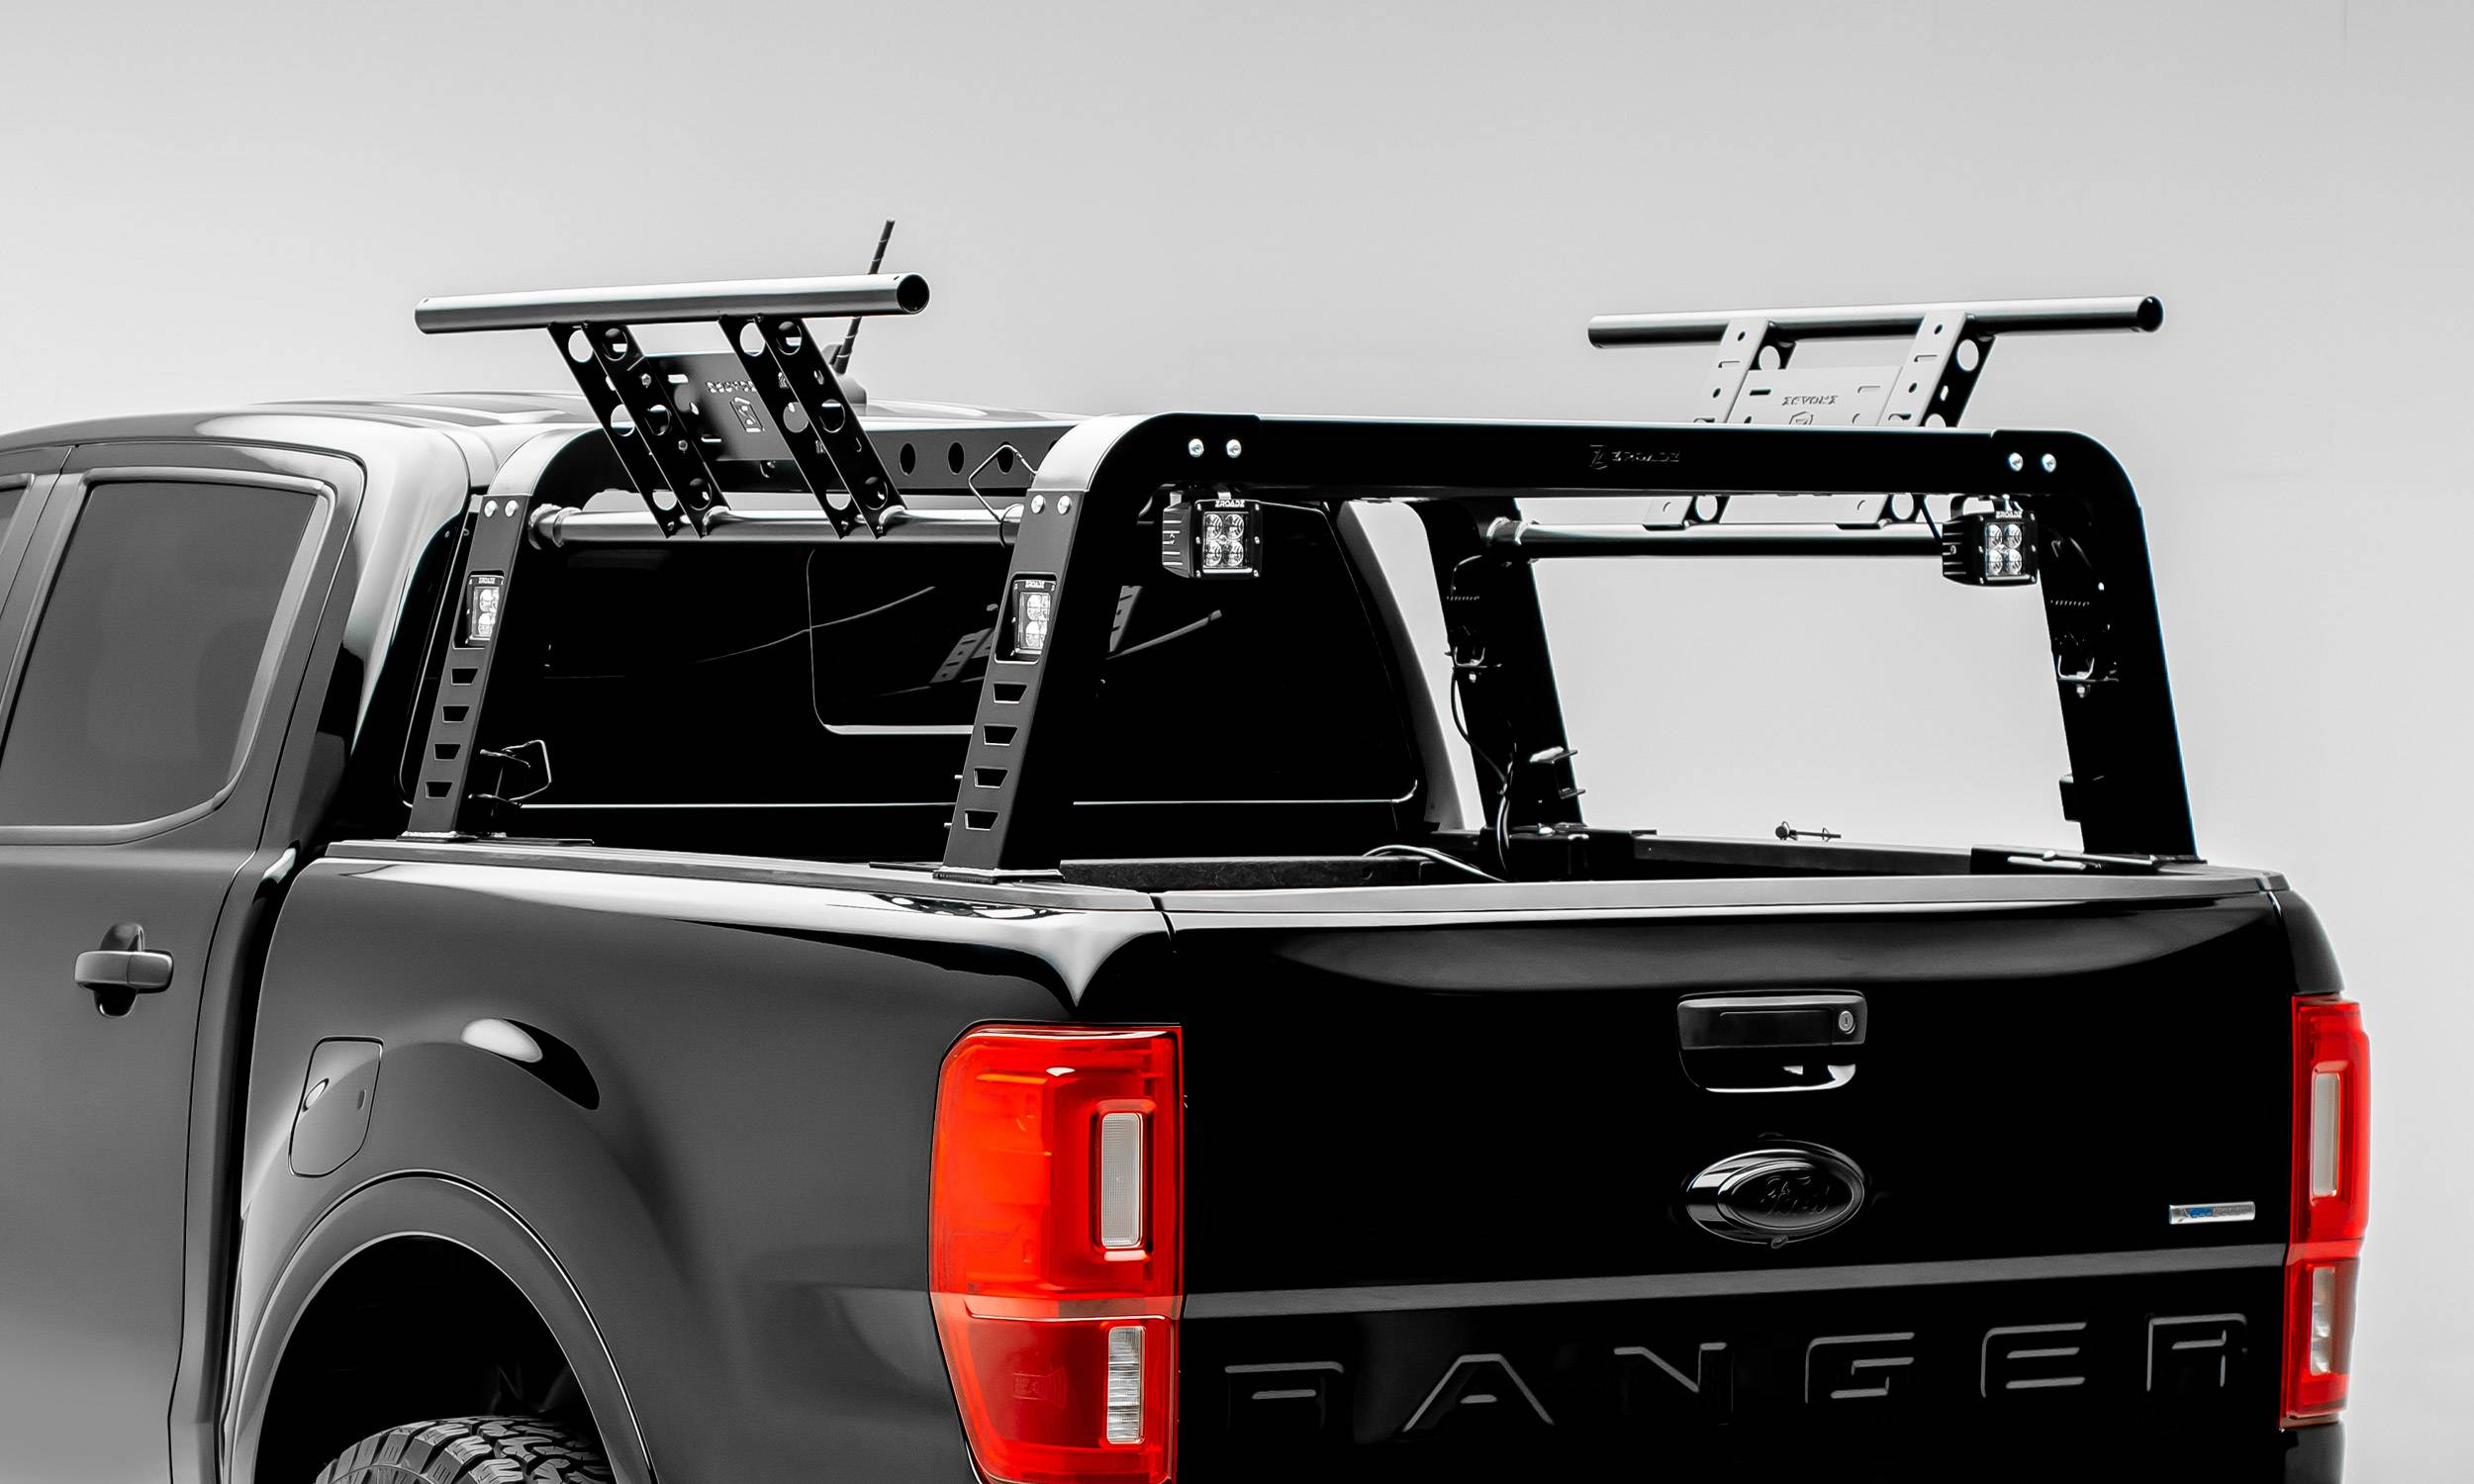 2019 2021 ford ranger overland access rack with two lifting side gates and 4 3 inch zroadz led pod lights pn z835101